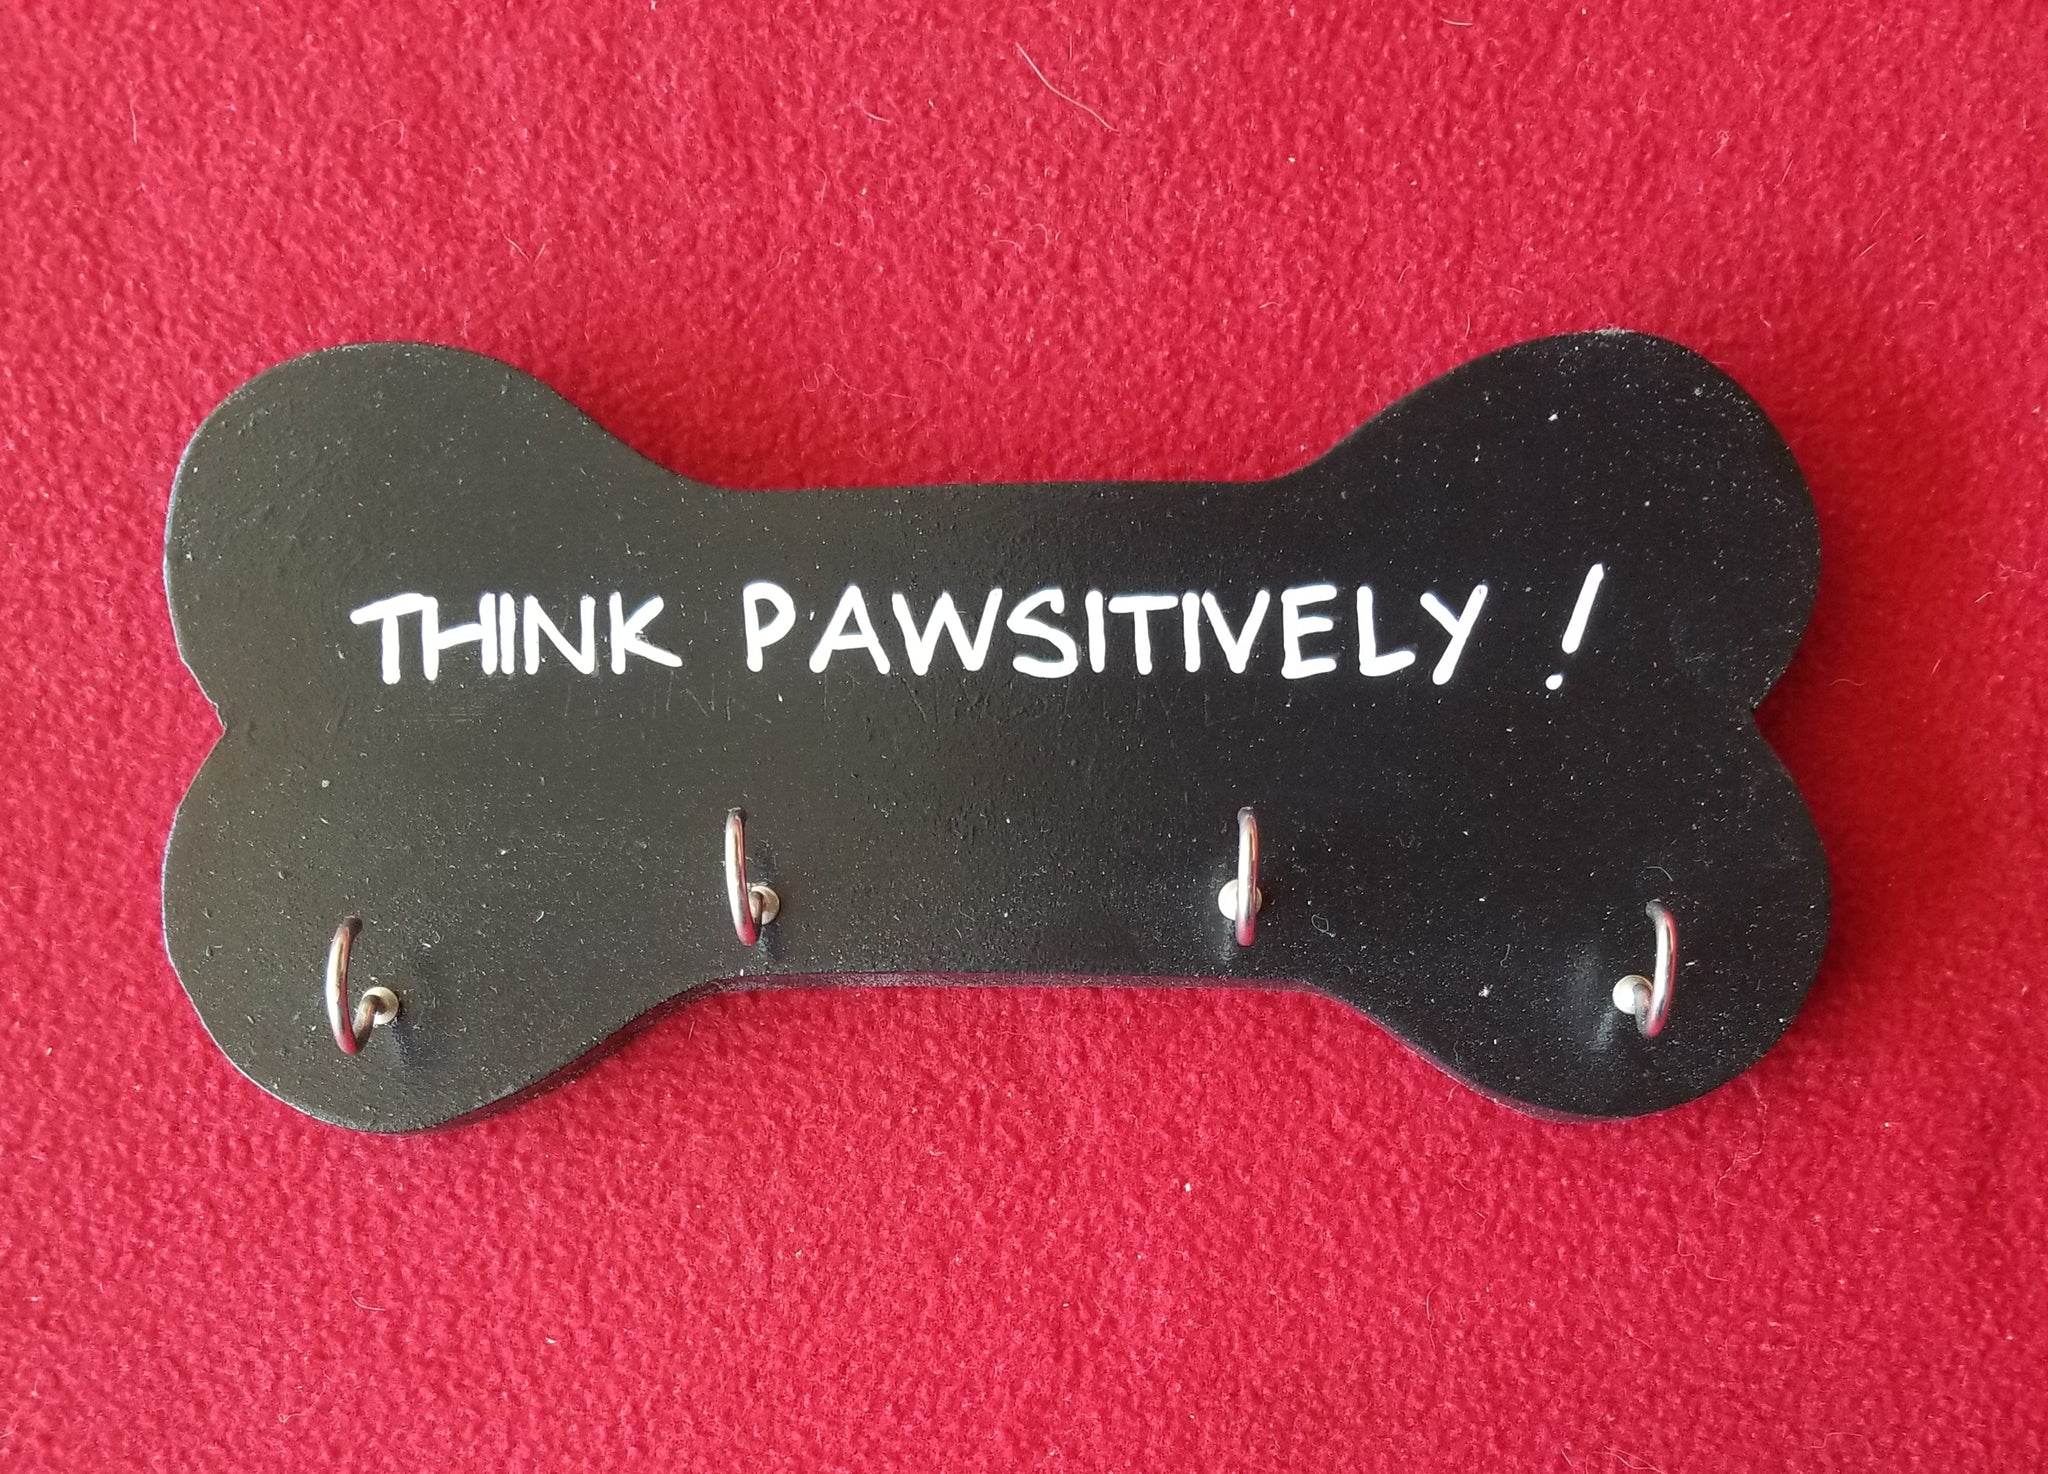 Think Pawsitively!